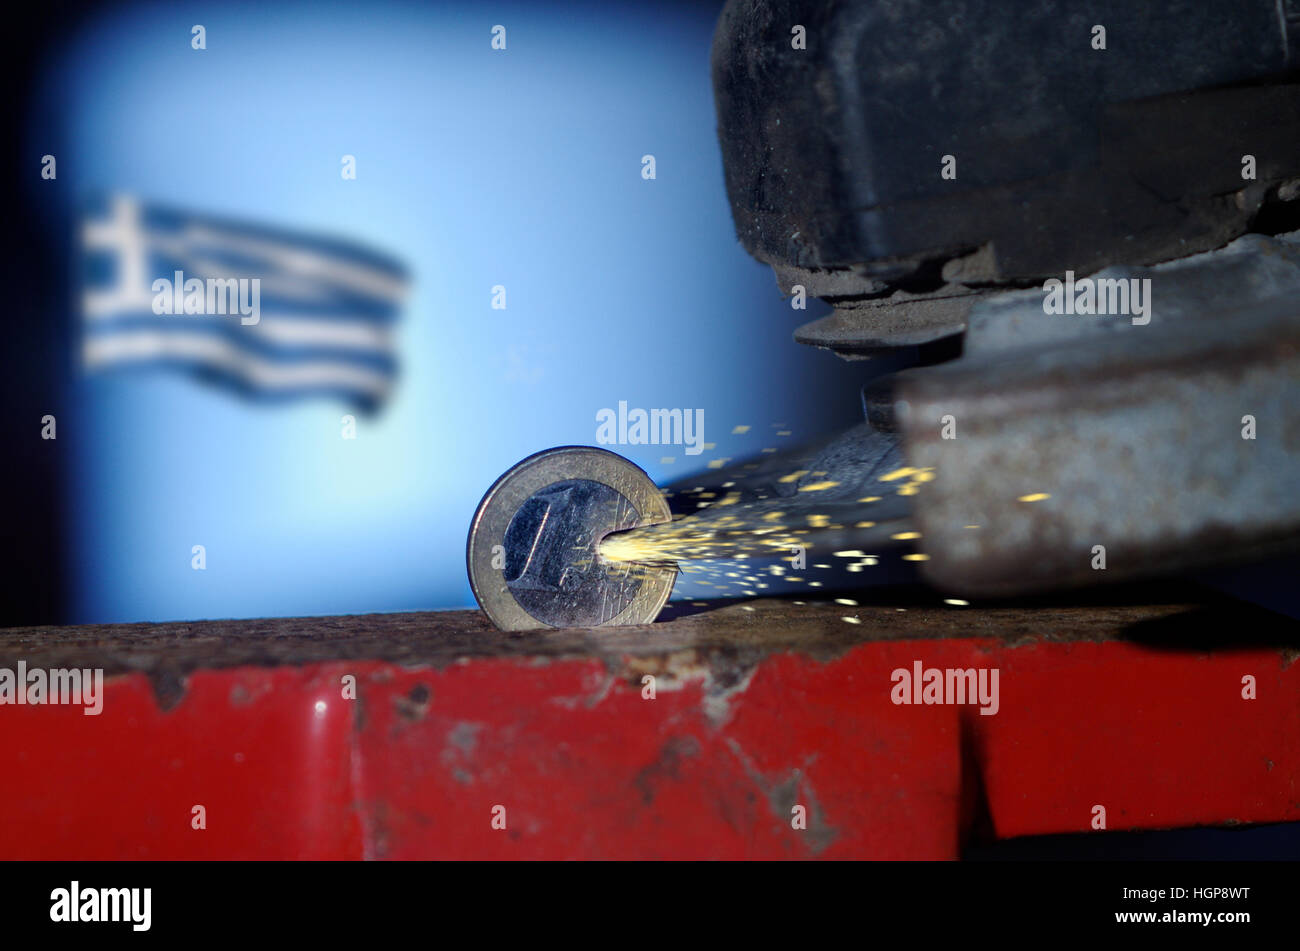 One Euro coin in a vice being cut with an angle grinder whilst Greek flag flies in background - Stock Image